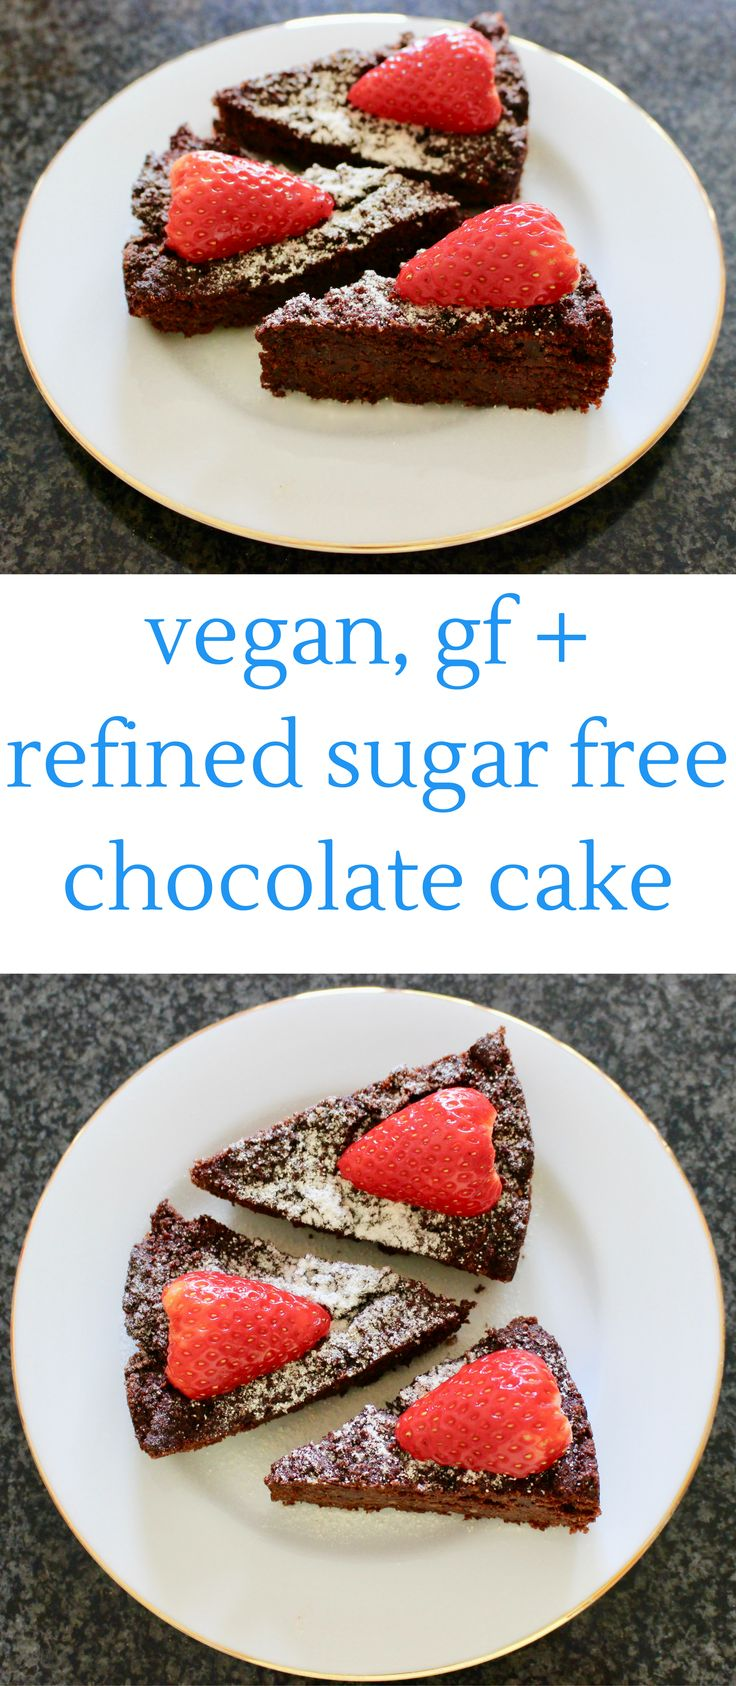 This Vegan, Gluten-Free + Refined Sugar Free Chocolate Cake is super easy to make and so delicious! It's even healthy enough to have for breakfast!